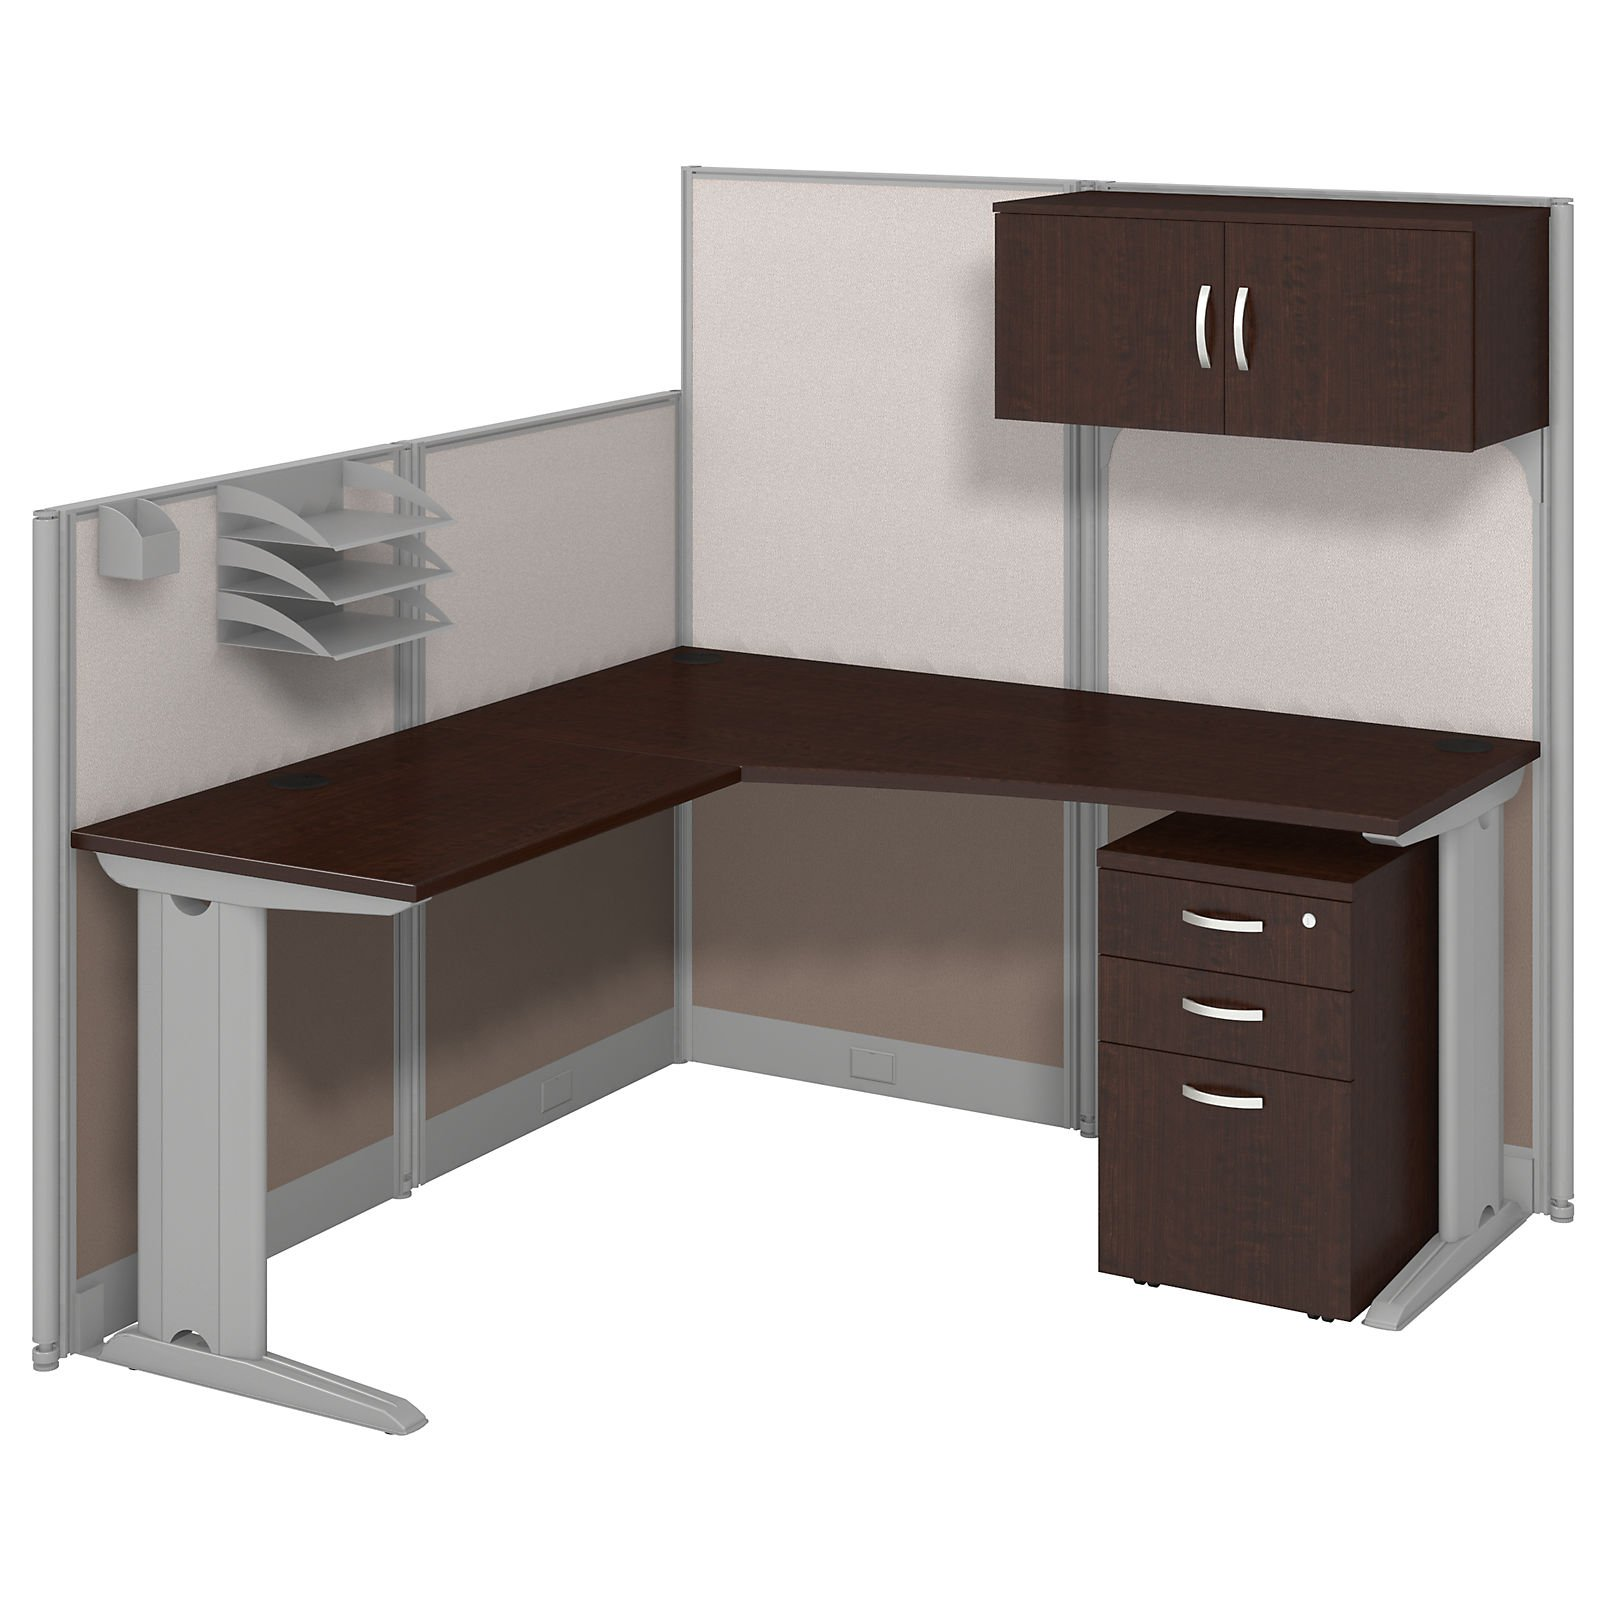 Bush Business Furniture Office in an Hour 65W x 65D in. L Shaped Cubicle Workstation Desk with Optional Storage and Chair